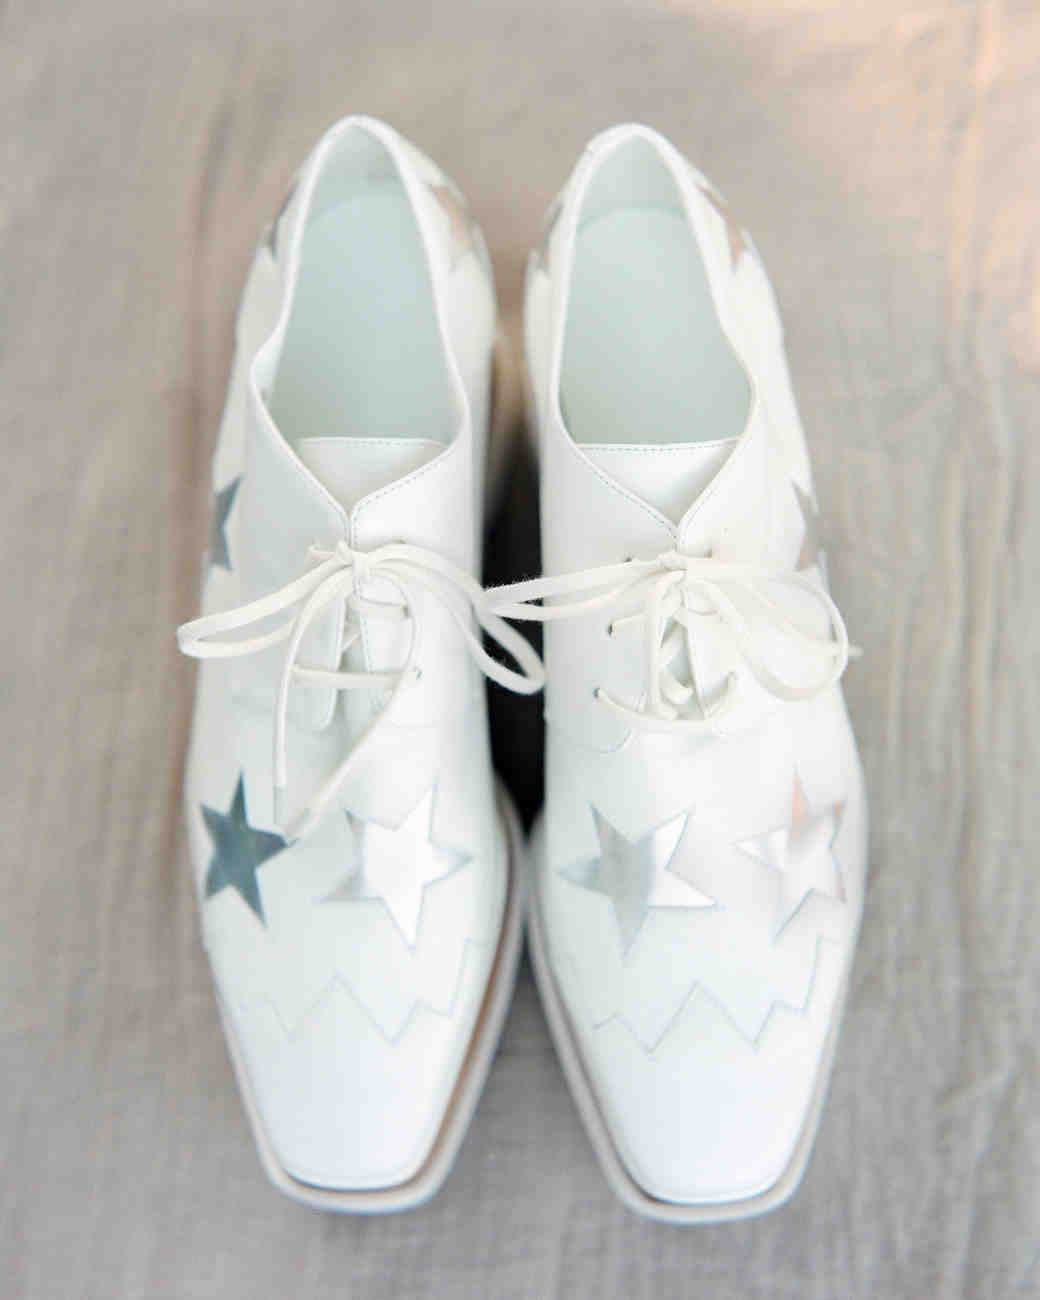 Starry Bridal Wedding Shoes